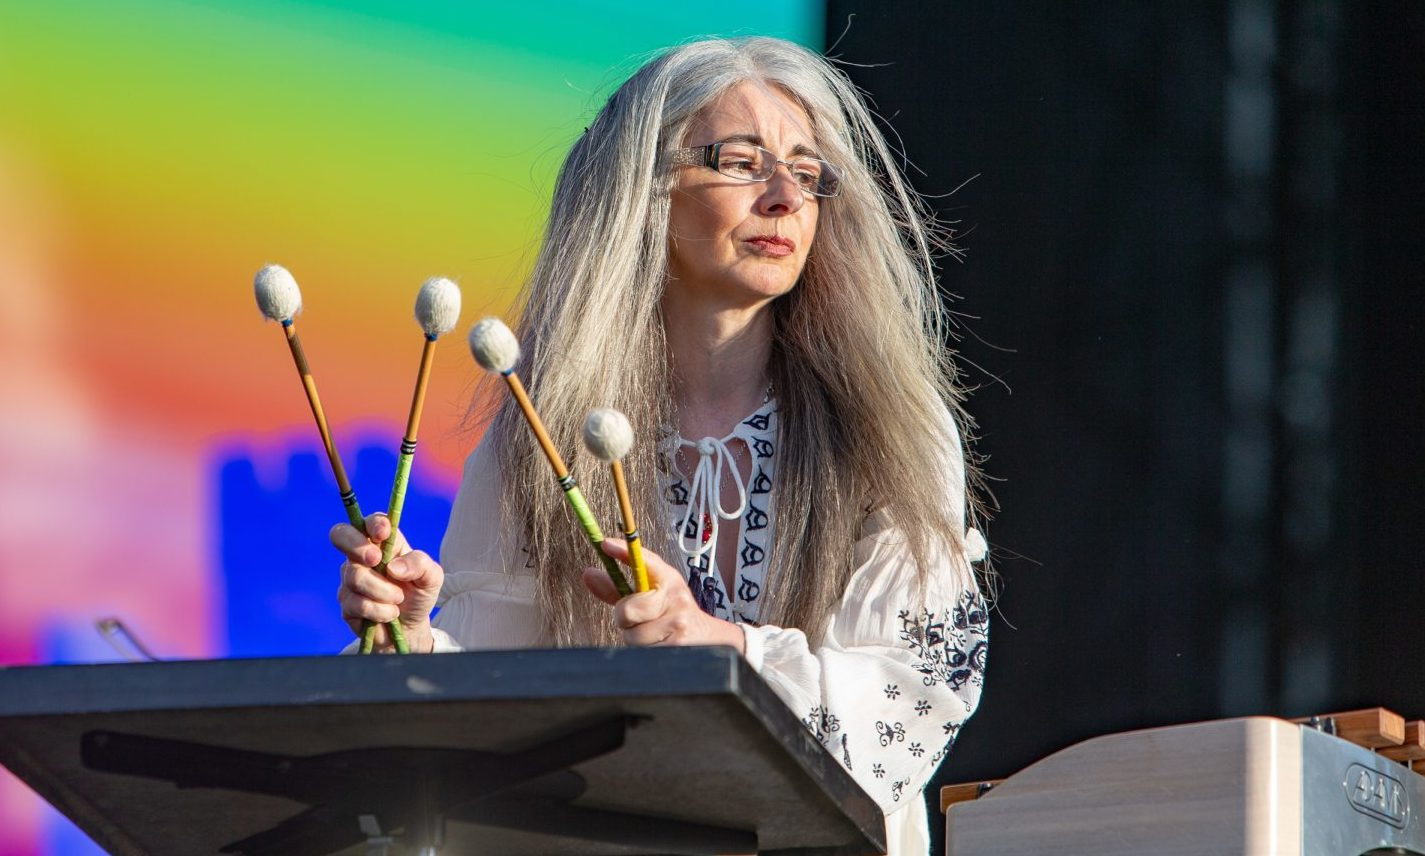 Percussionist Evelyn Glennie plays the BBC Biggest Weekend in Perth, 2018.